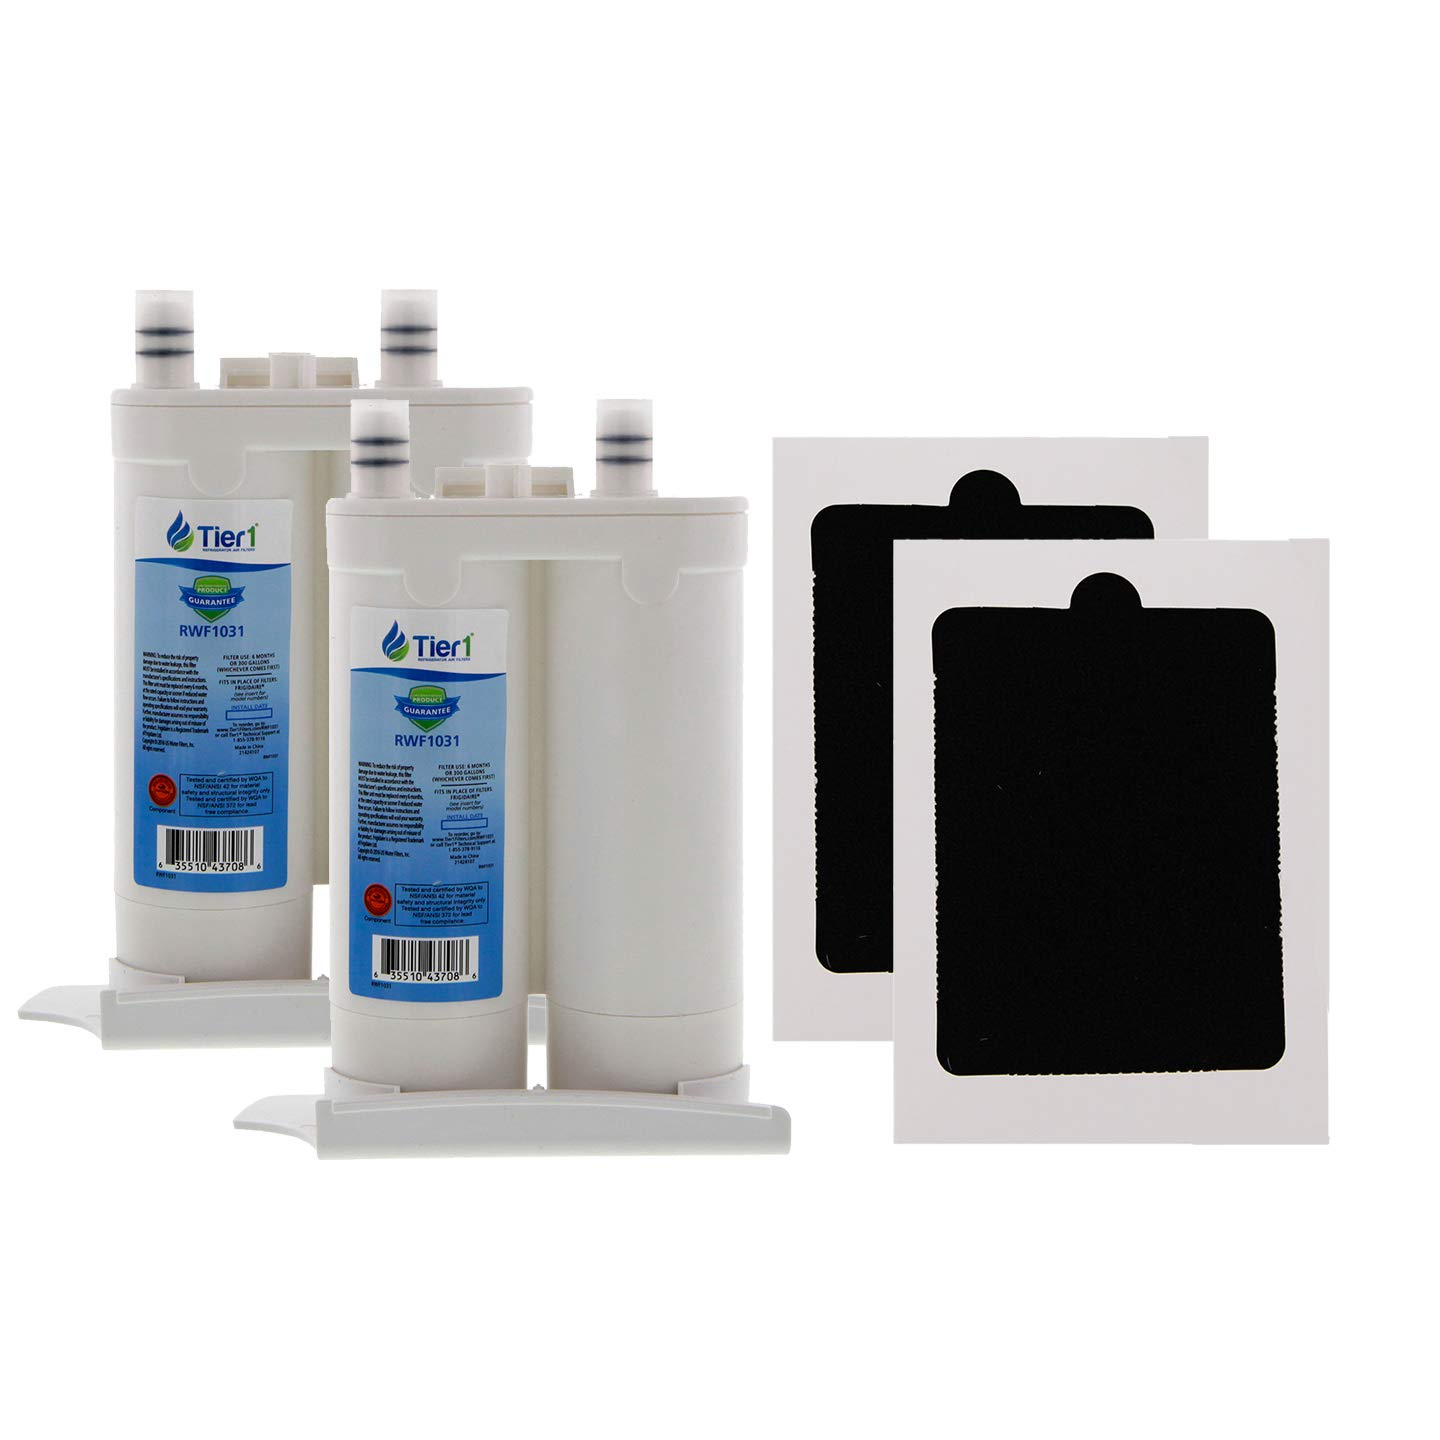 Tier1 Replacement for Frigidaire WF2CB Comparable PureSource2, NGFC 2000, 1004-42-FA, 469911, 469916 and PAULTRA Water and Air Filter 2-Pack Combo